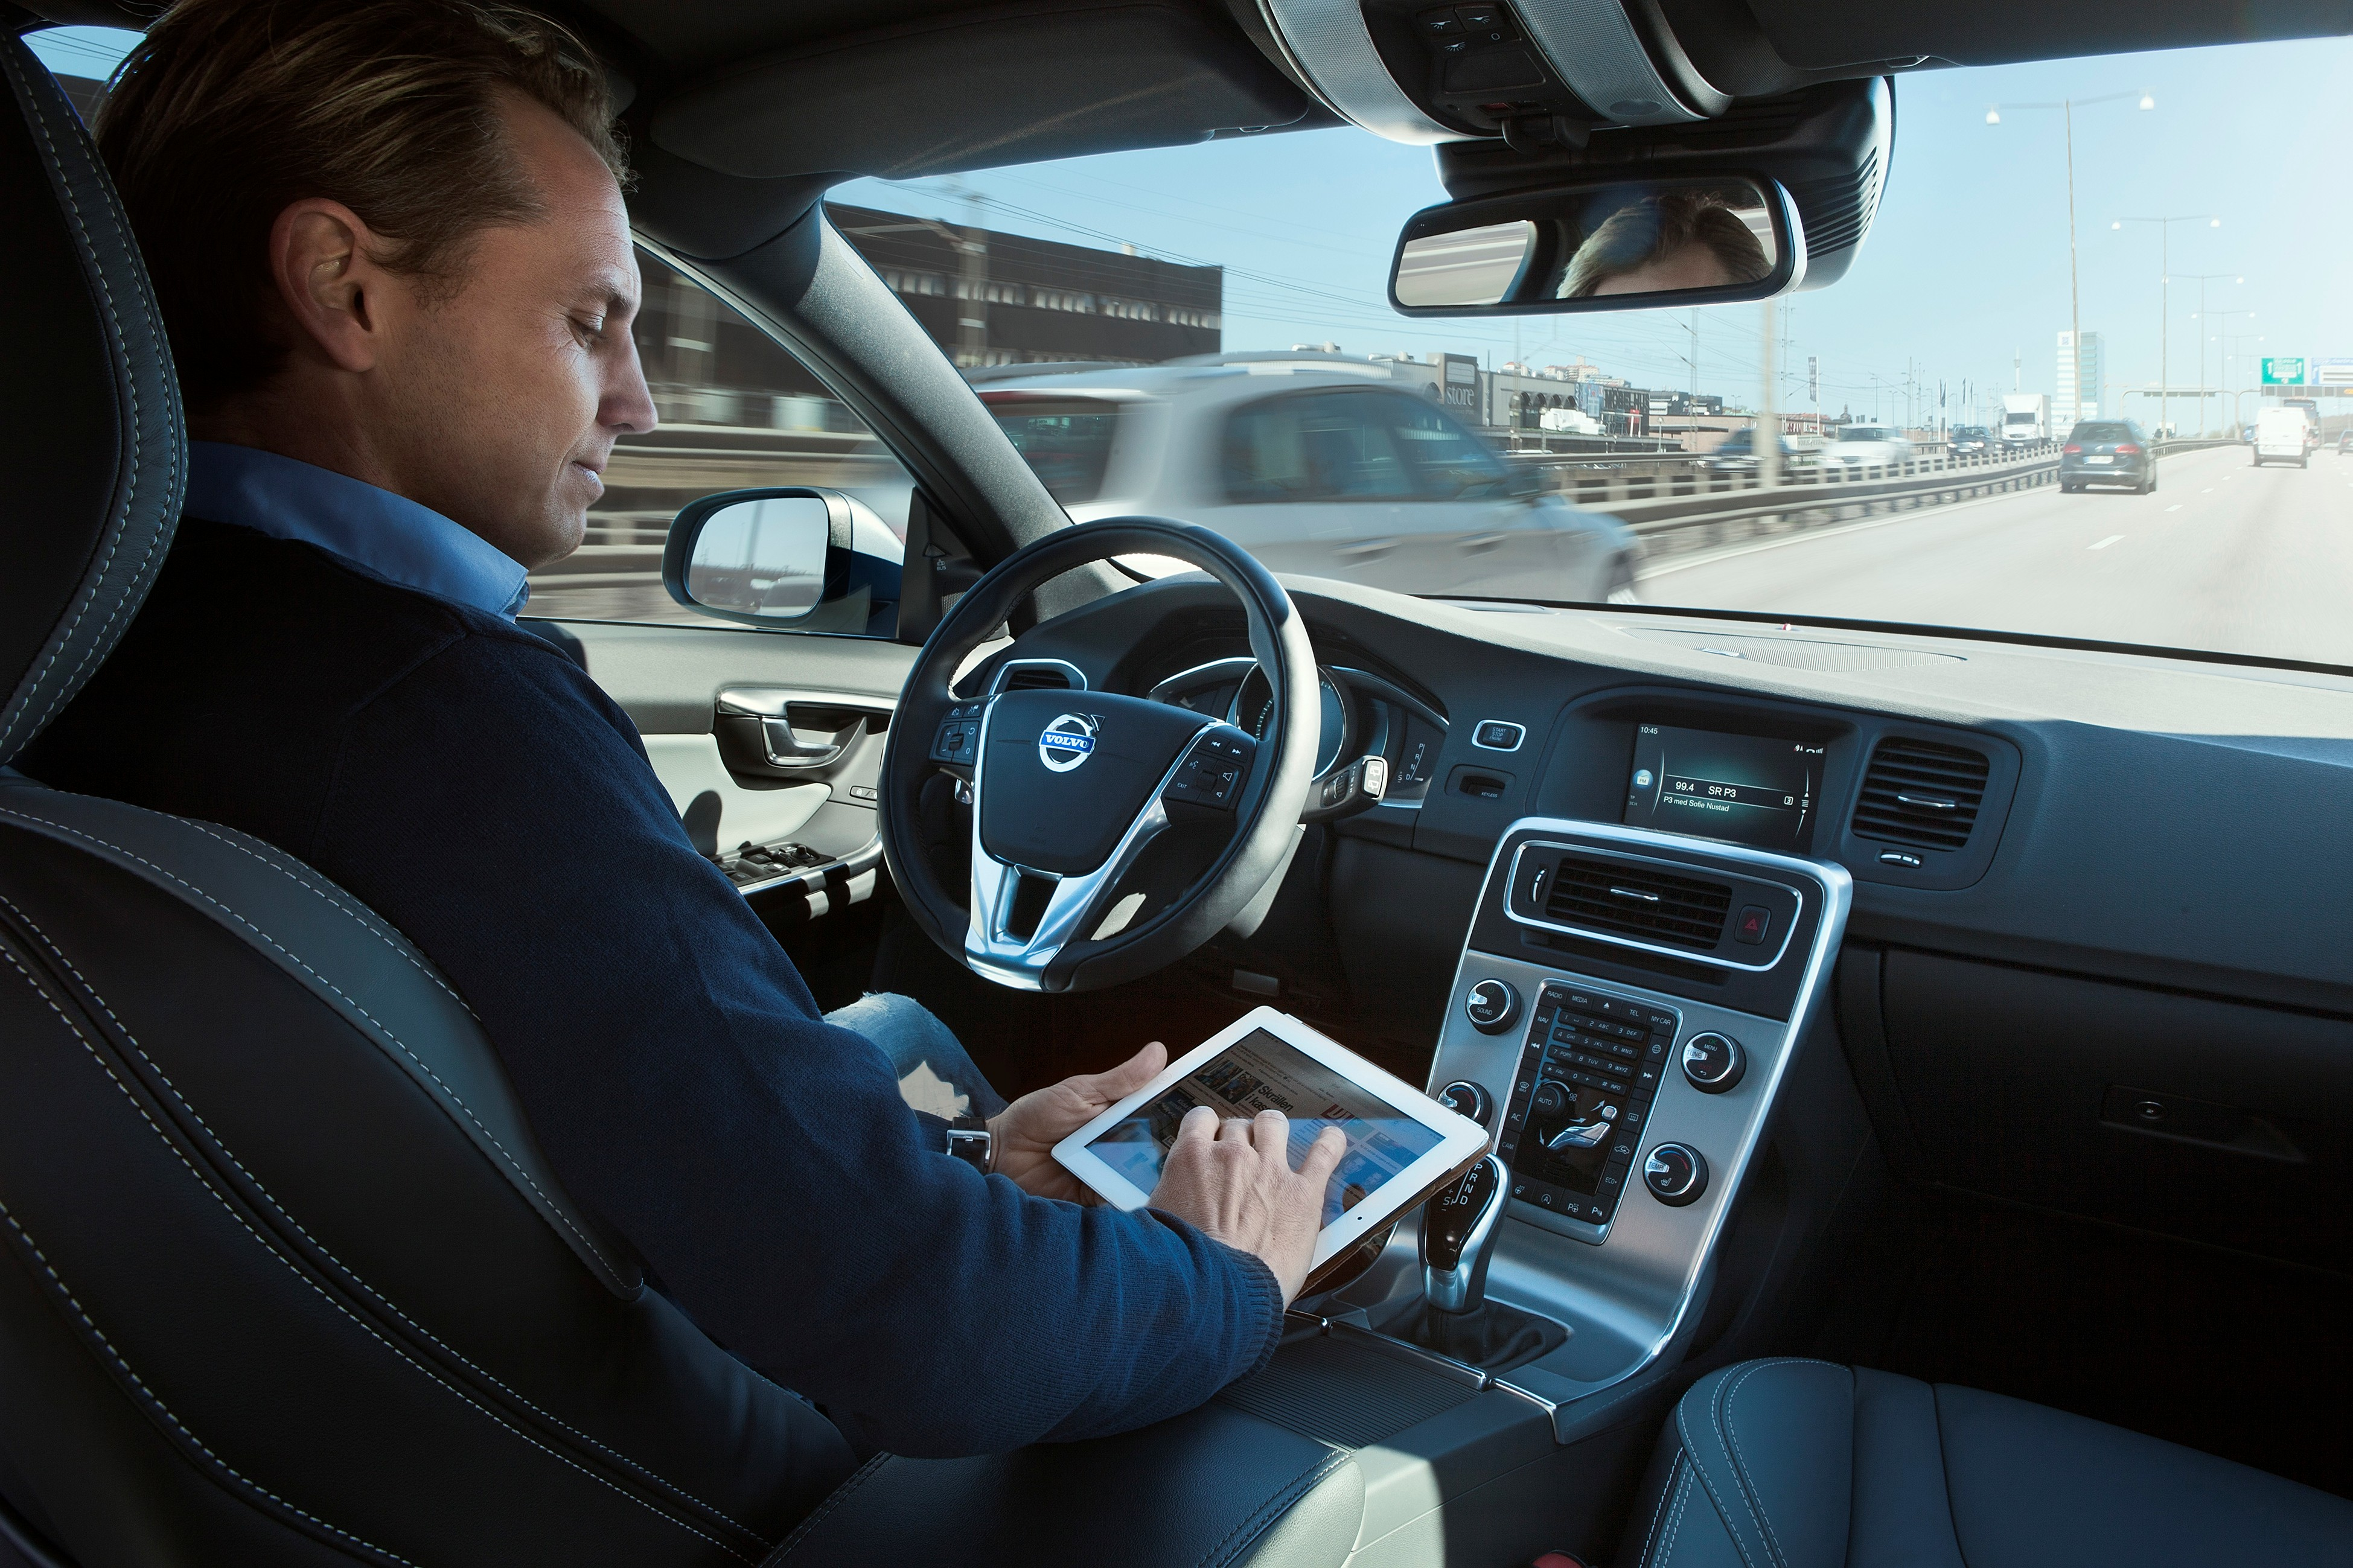 Volvo is expanding its self-driving car experiment to London in 2017.